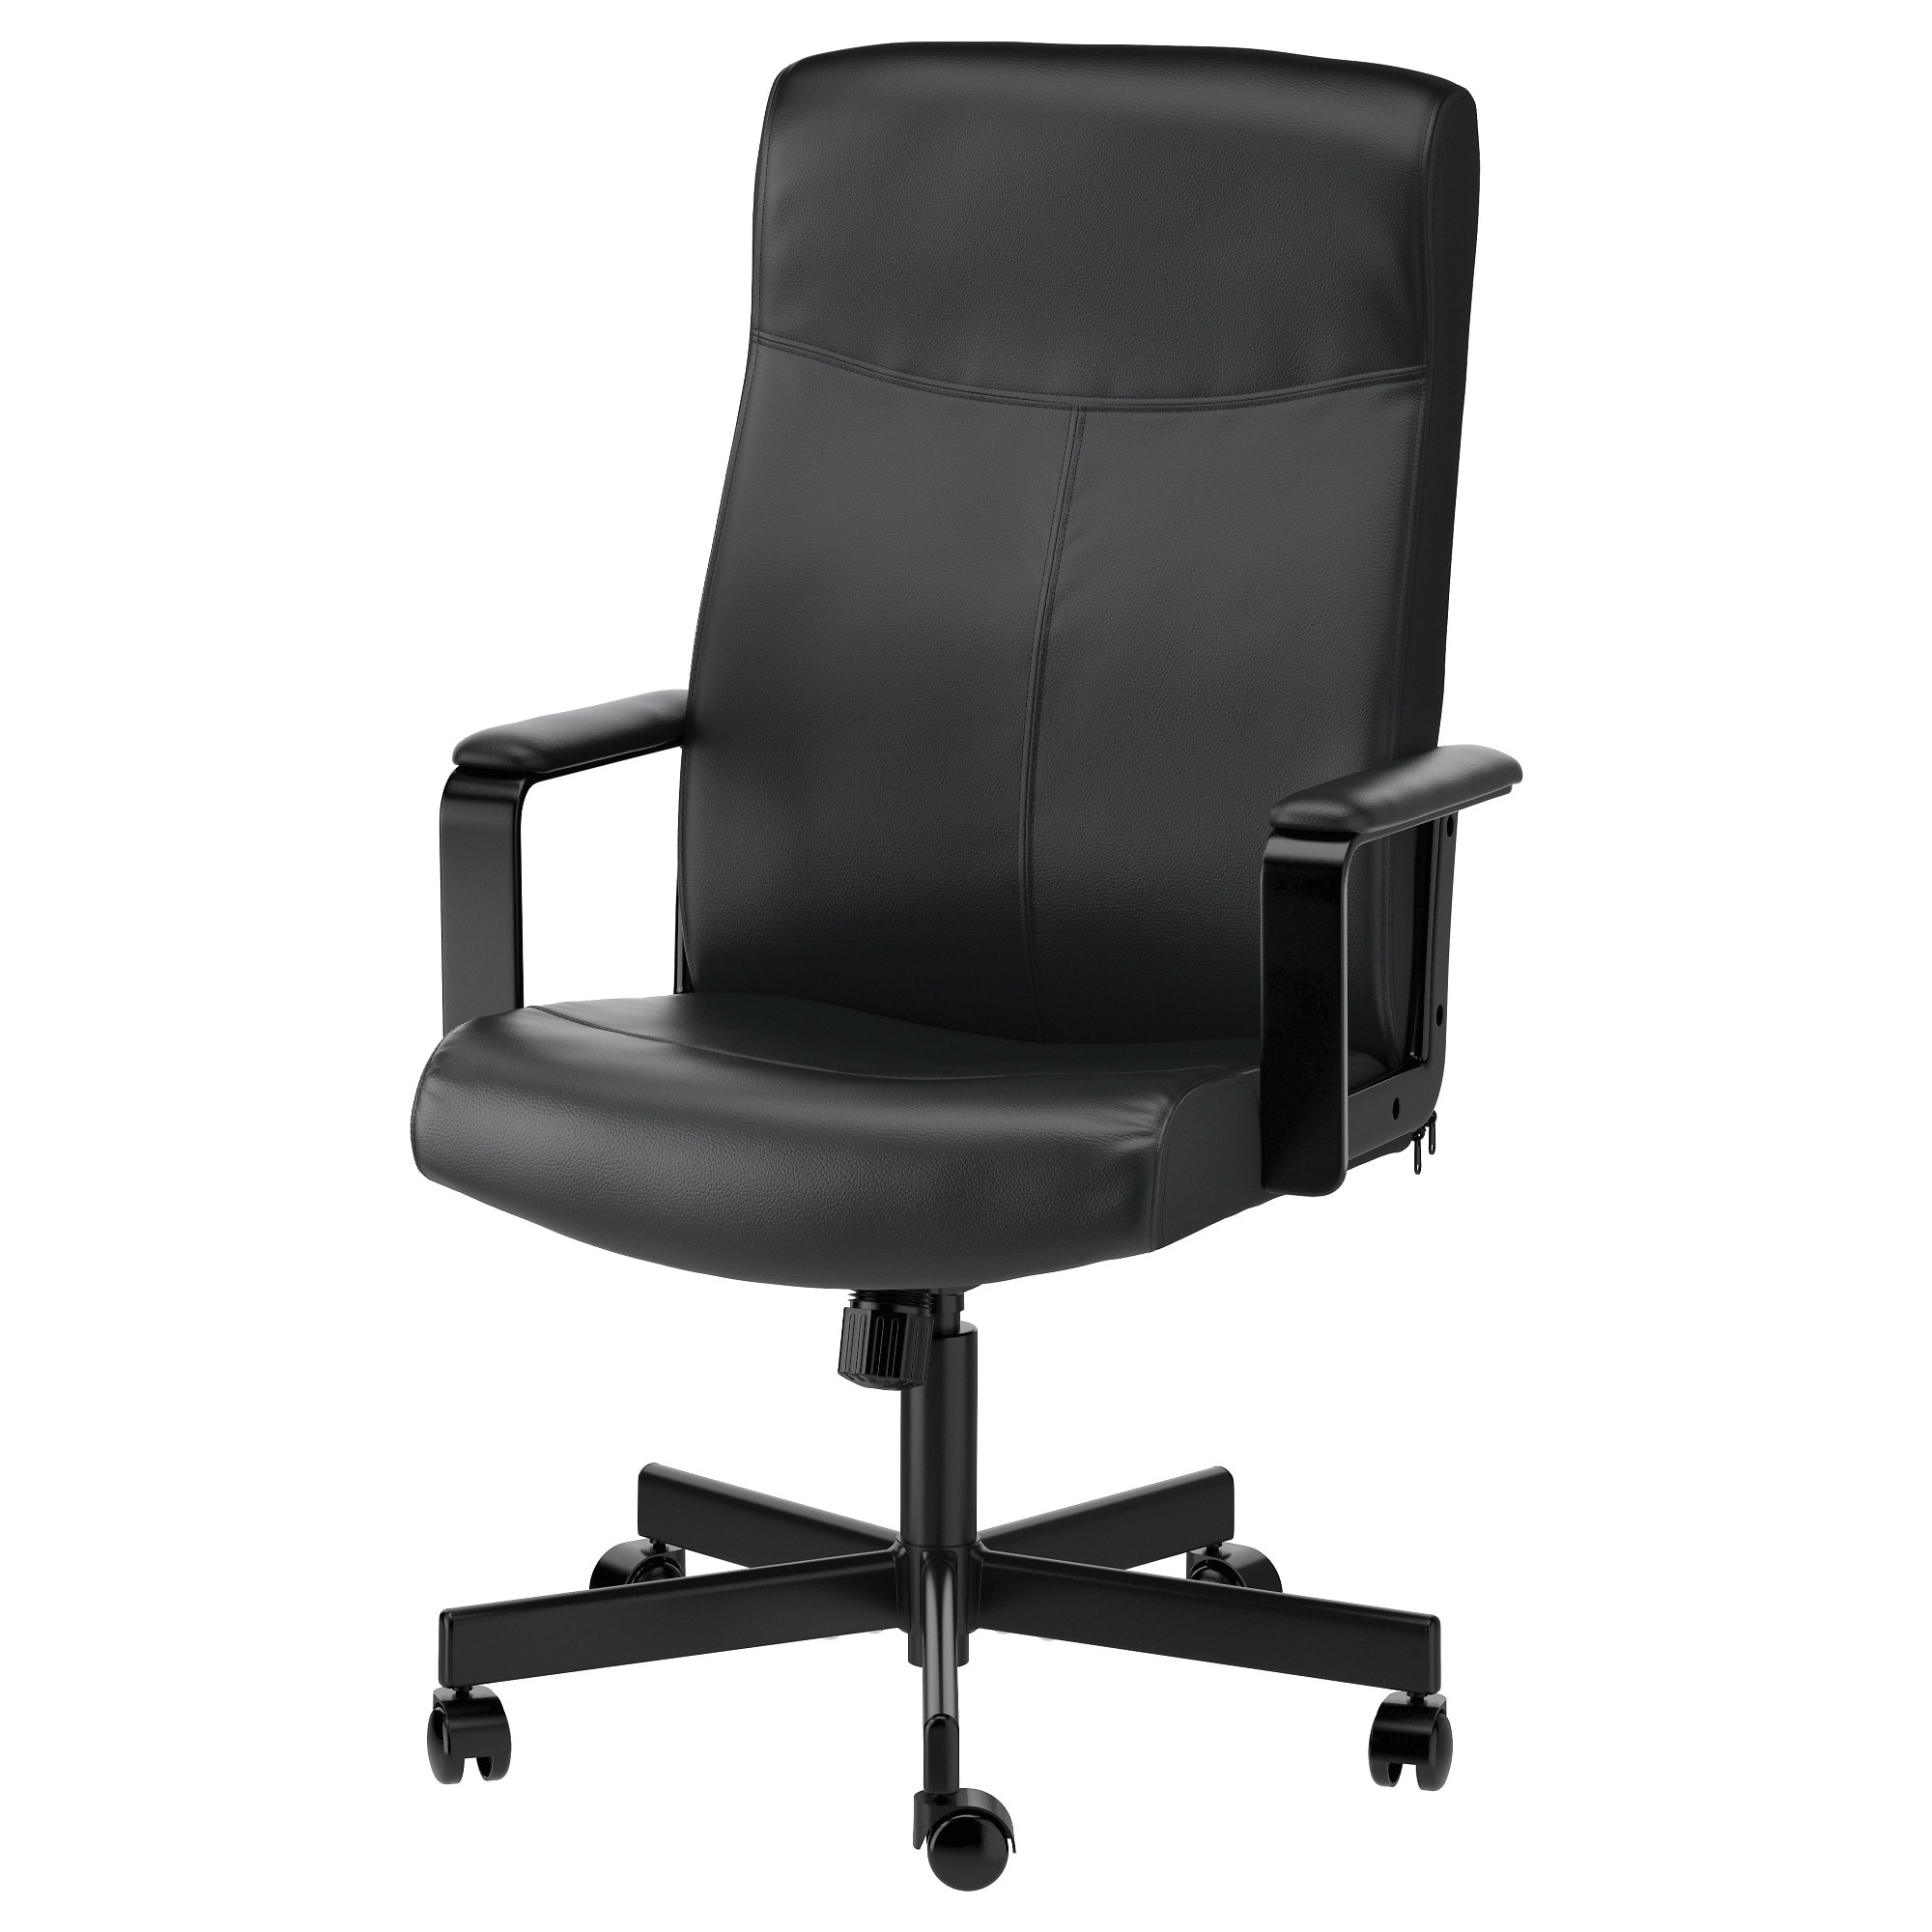 ikea millberget swivel chair you sit comfortably since the chair is adjustable in height